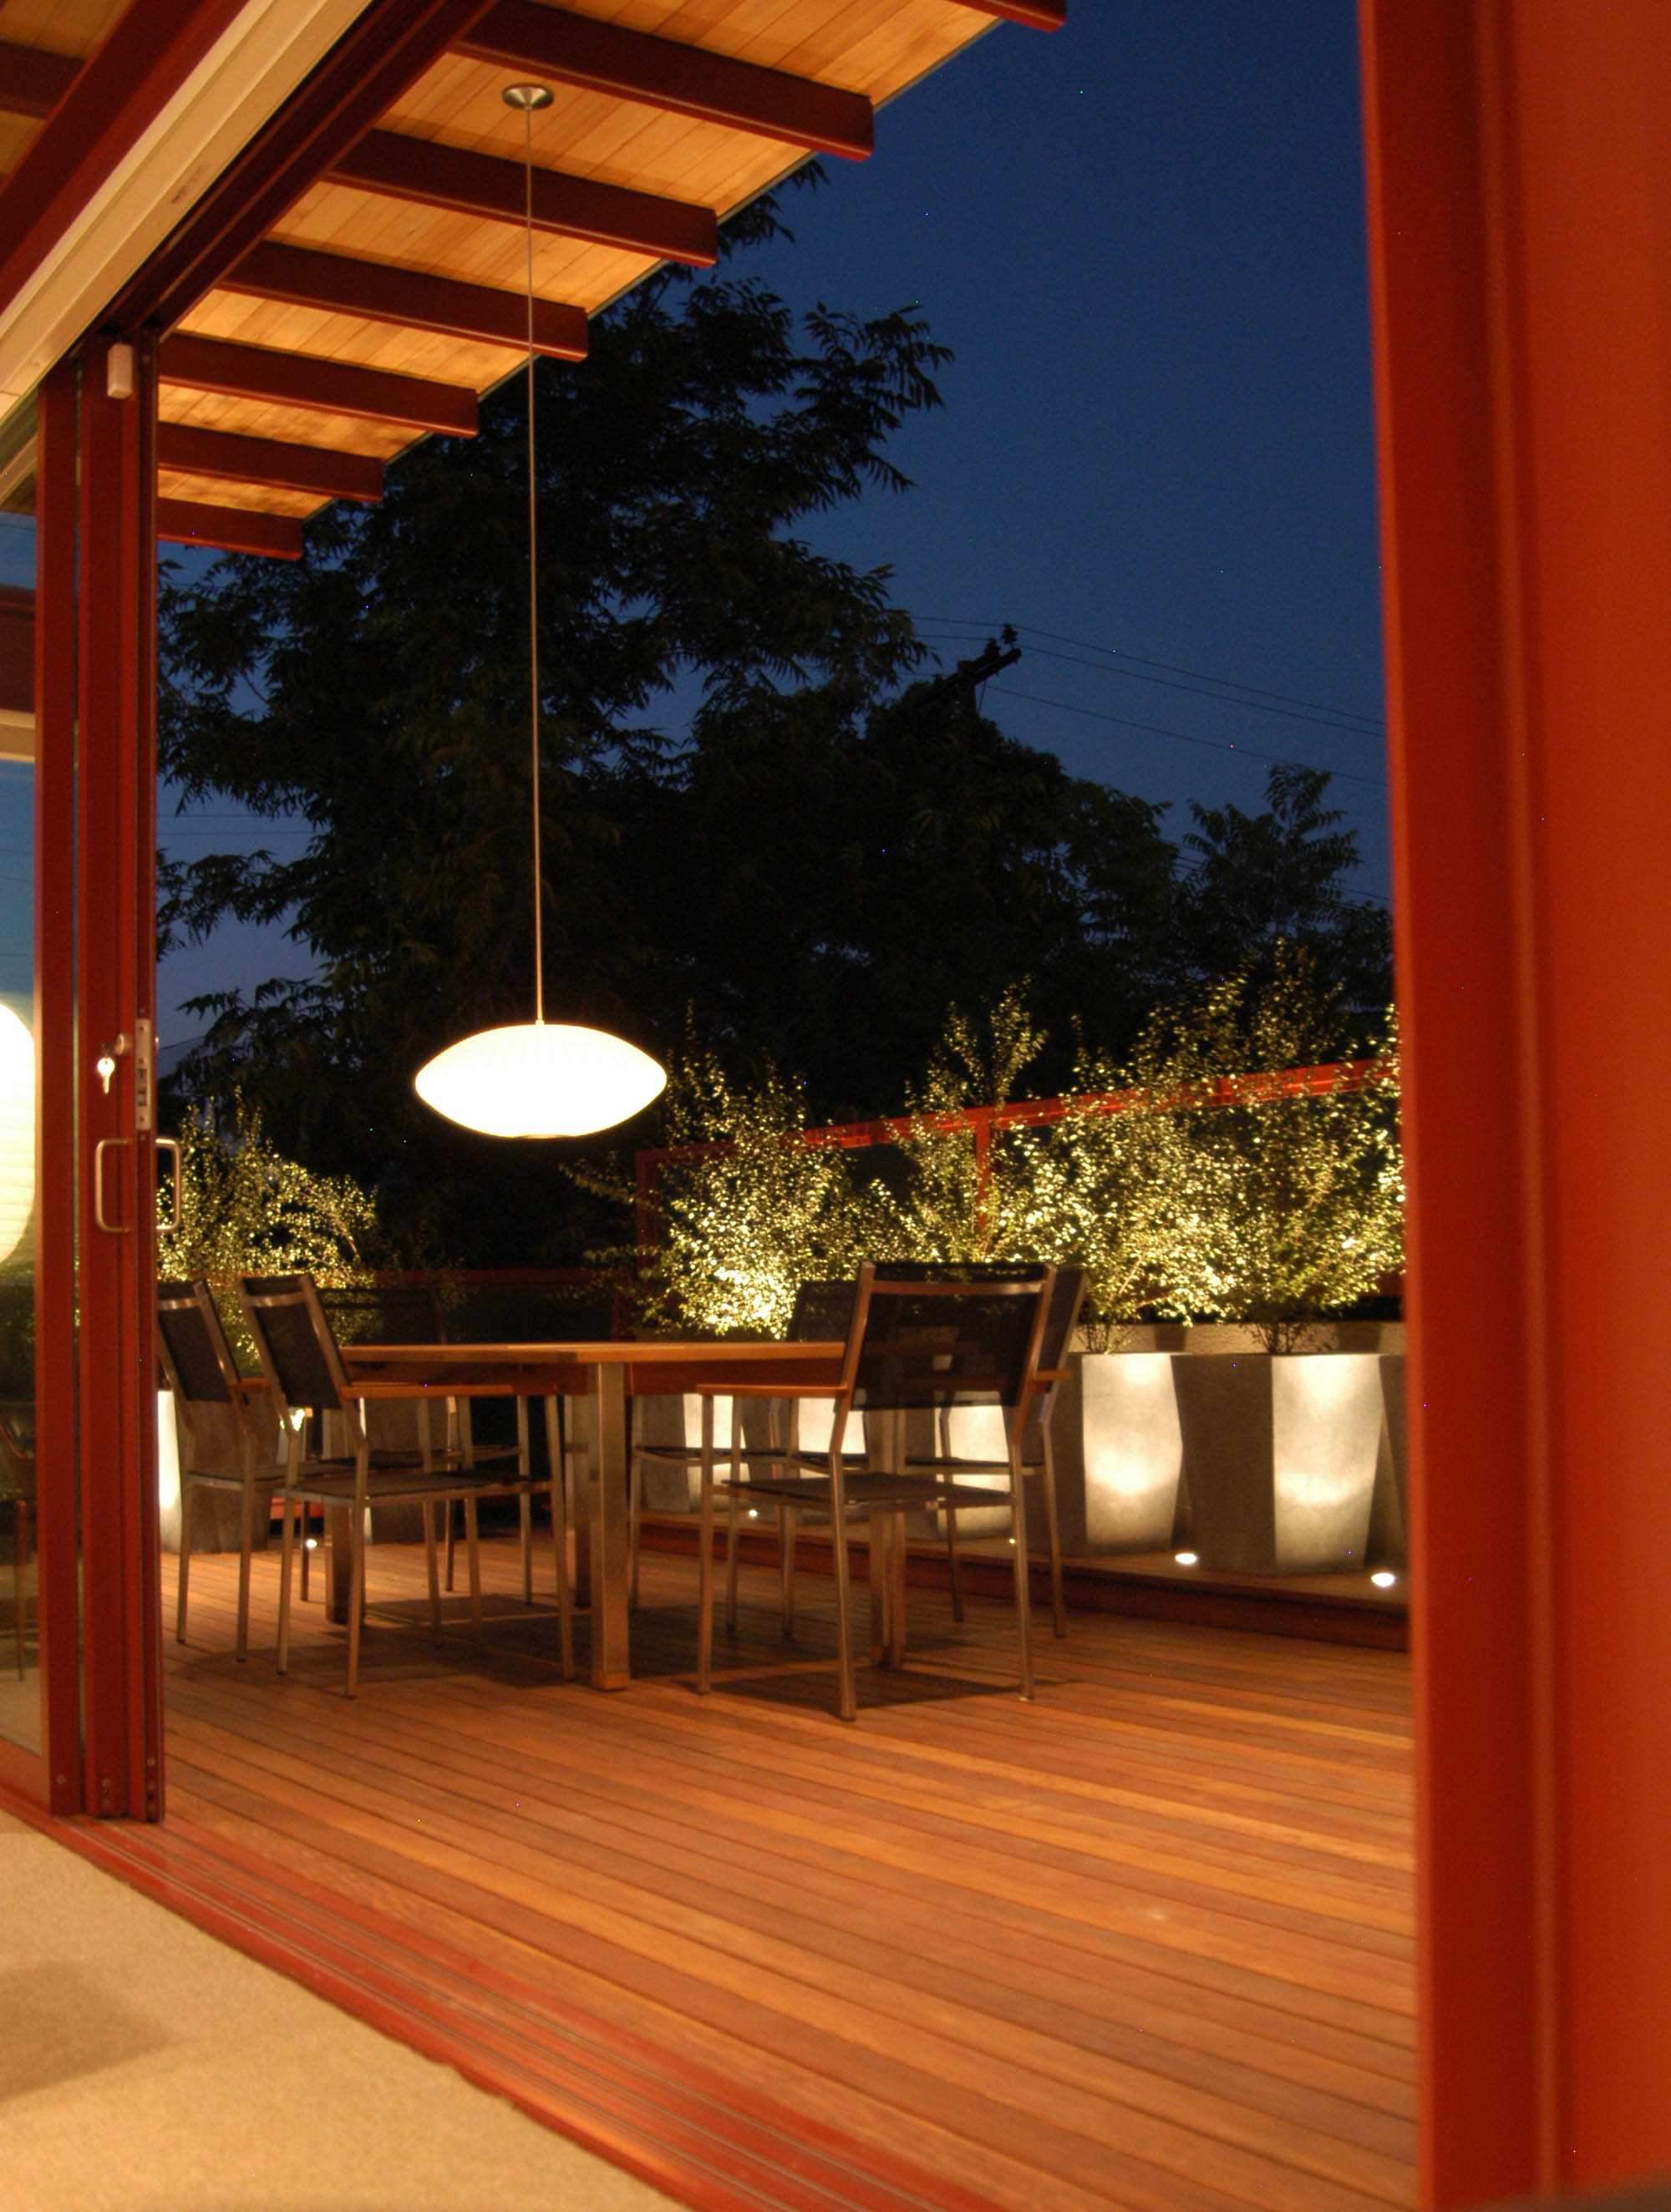 DINING DECK from INTERIOR